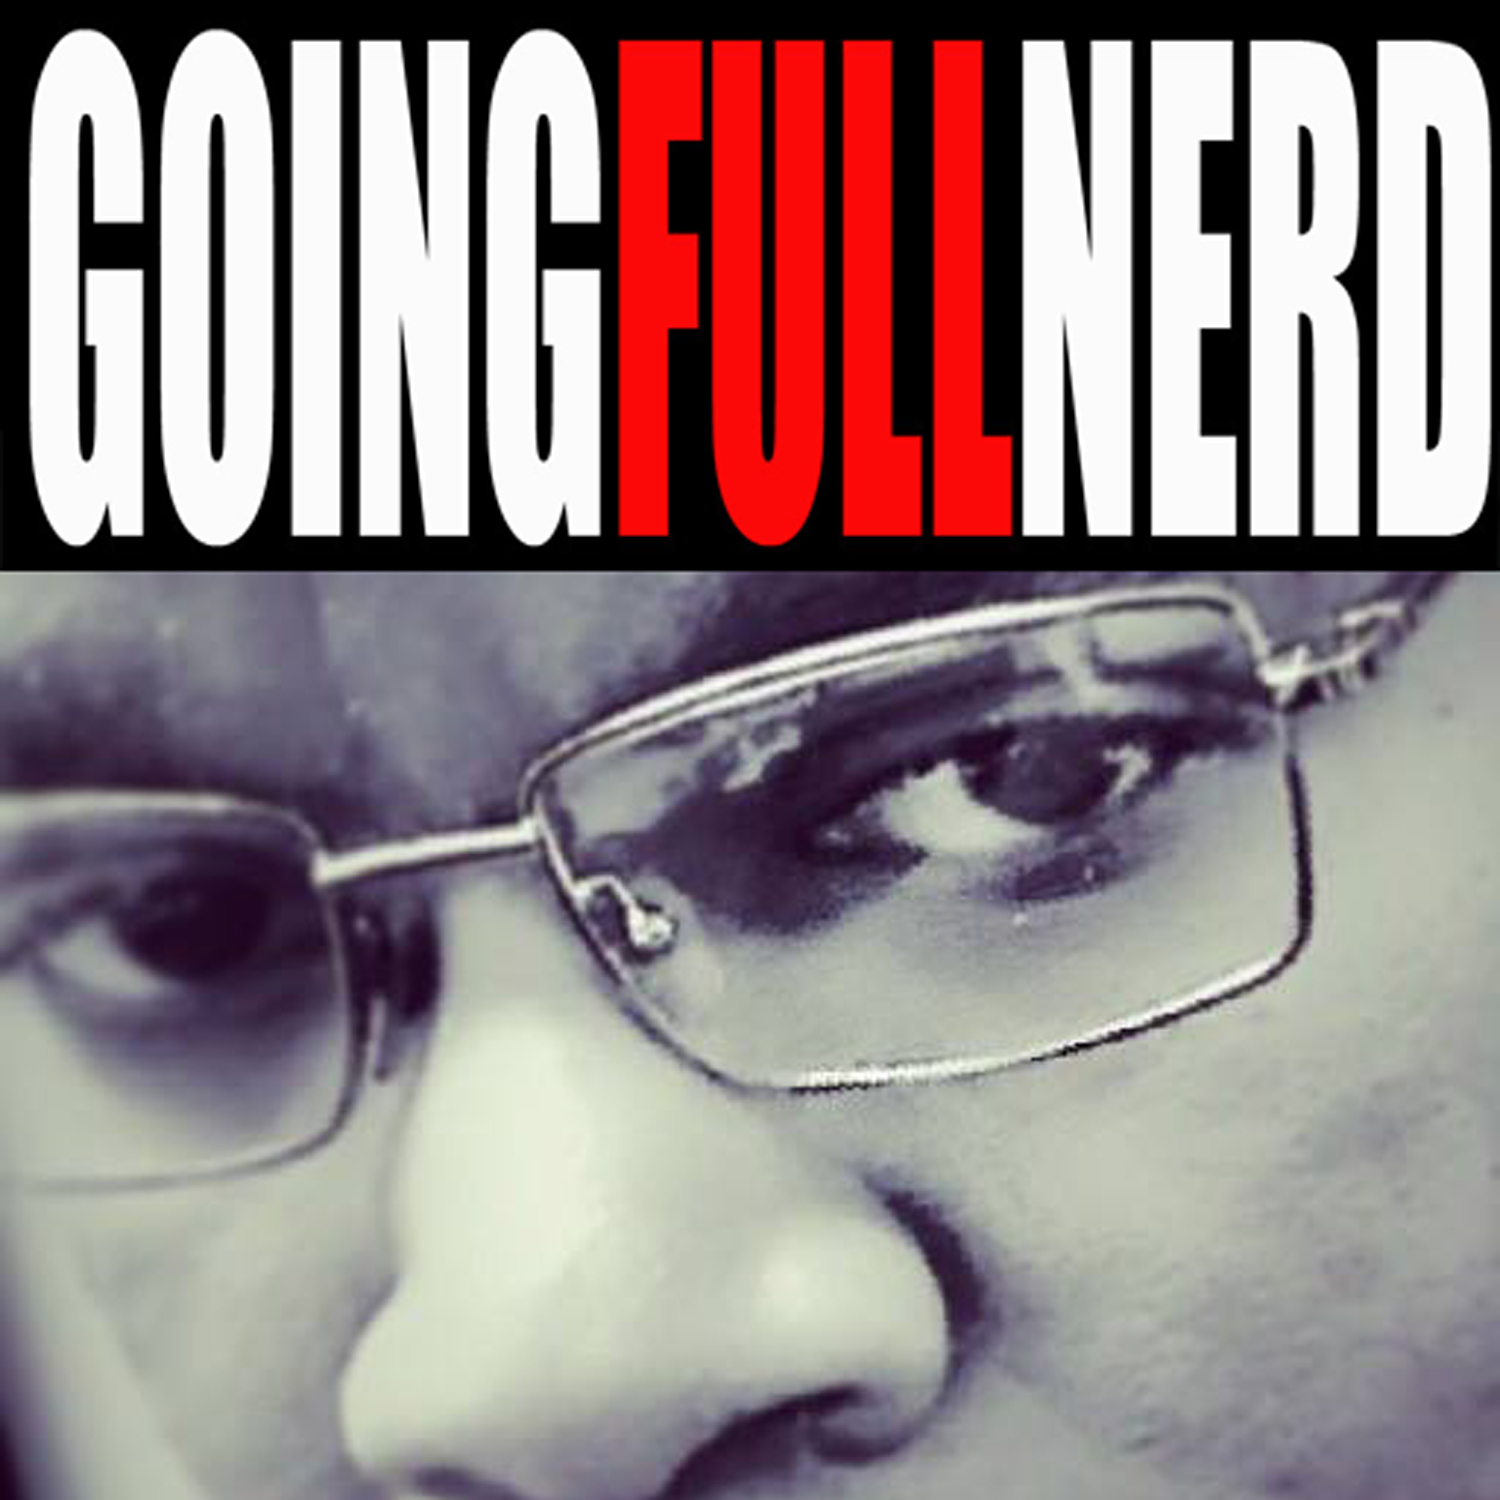 Weekly Nerd News - GoingFullNerd